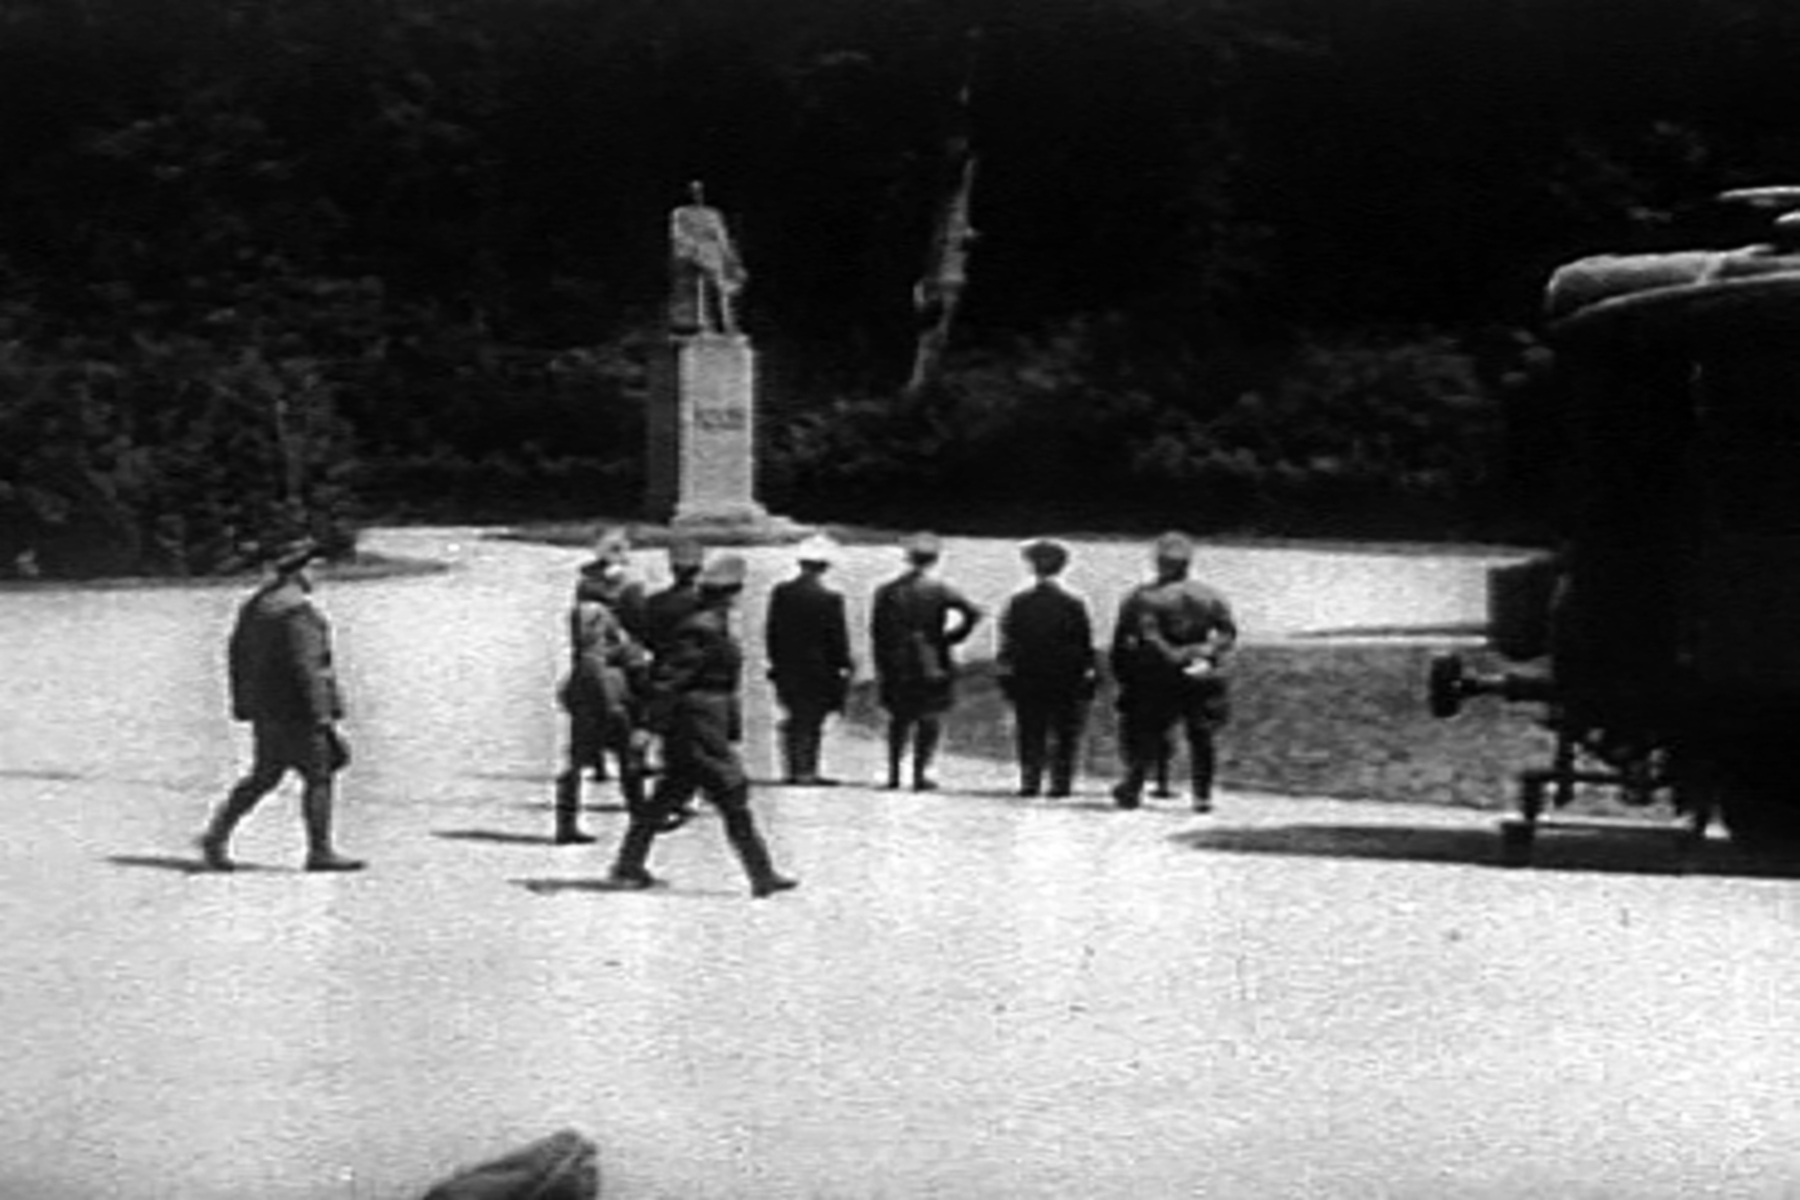 On 21st June 1940 near Compiegne in France Hitler (hand on hip) staring at Marshal Fochs statue wiki 01